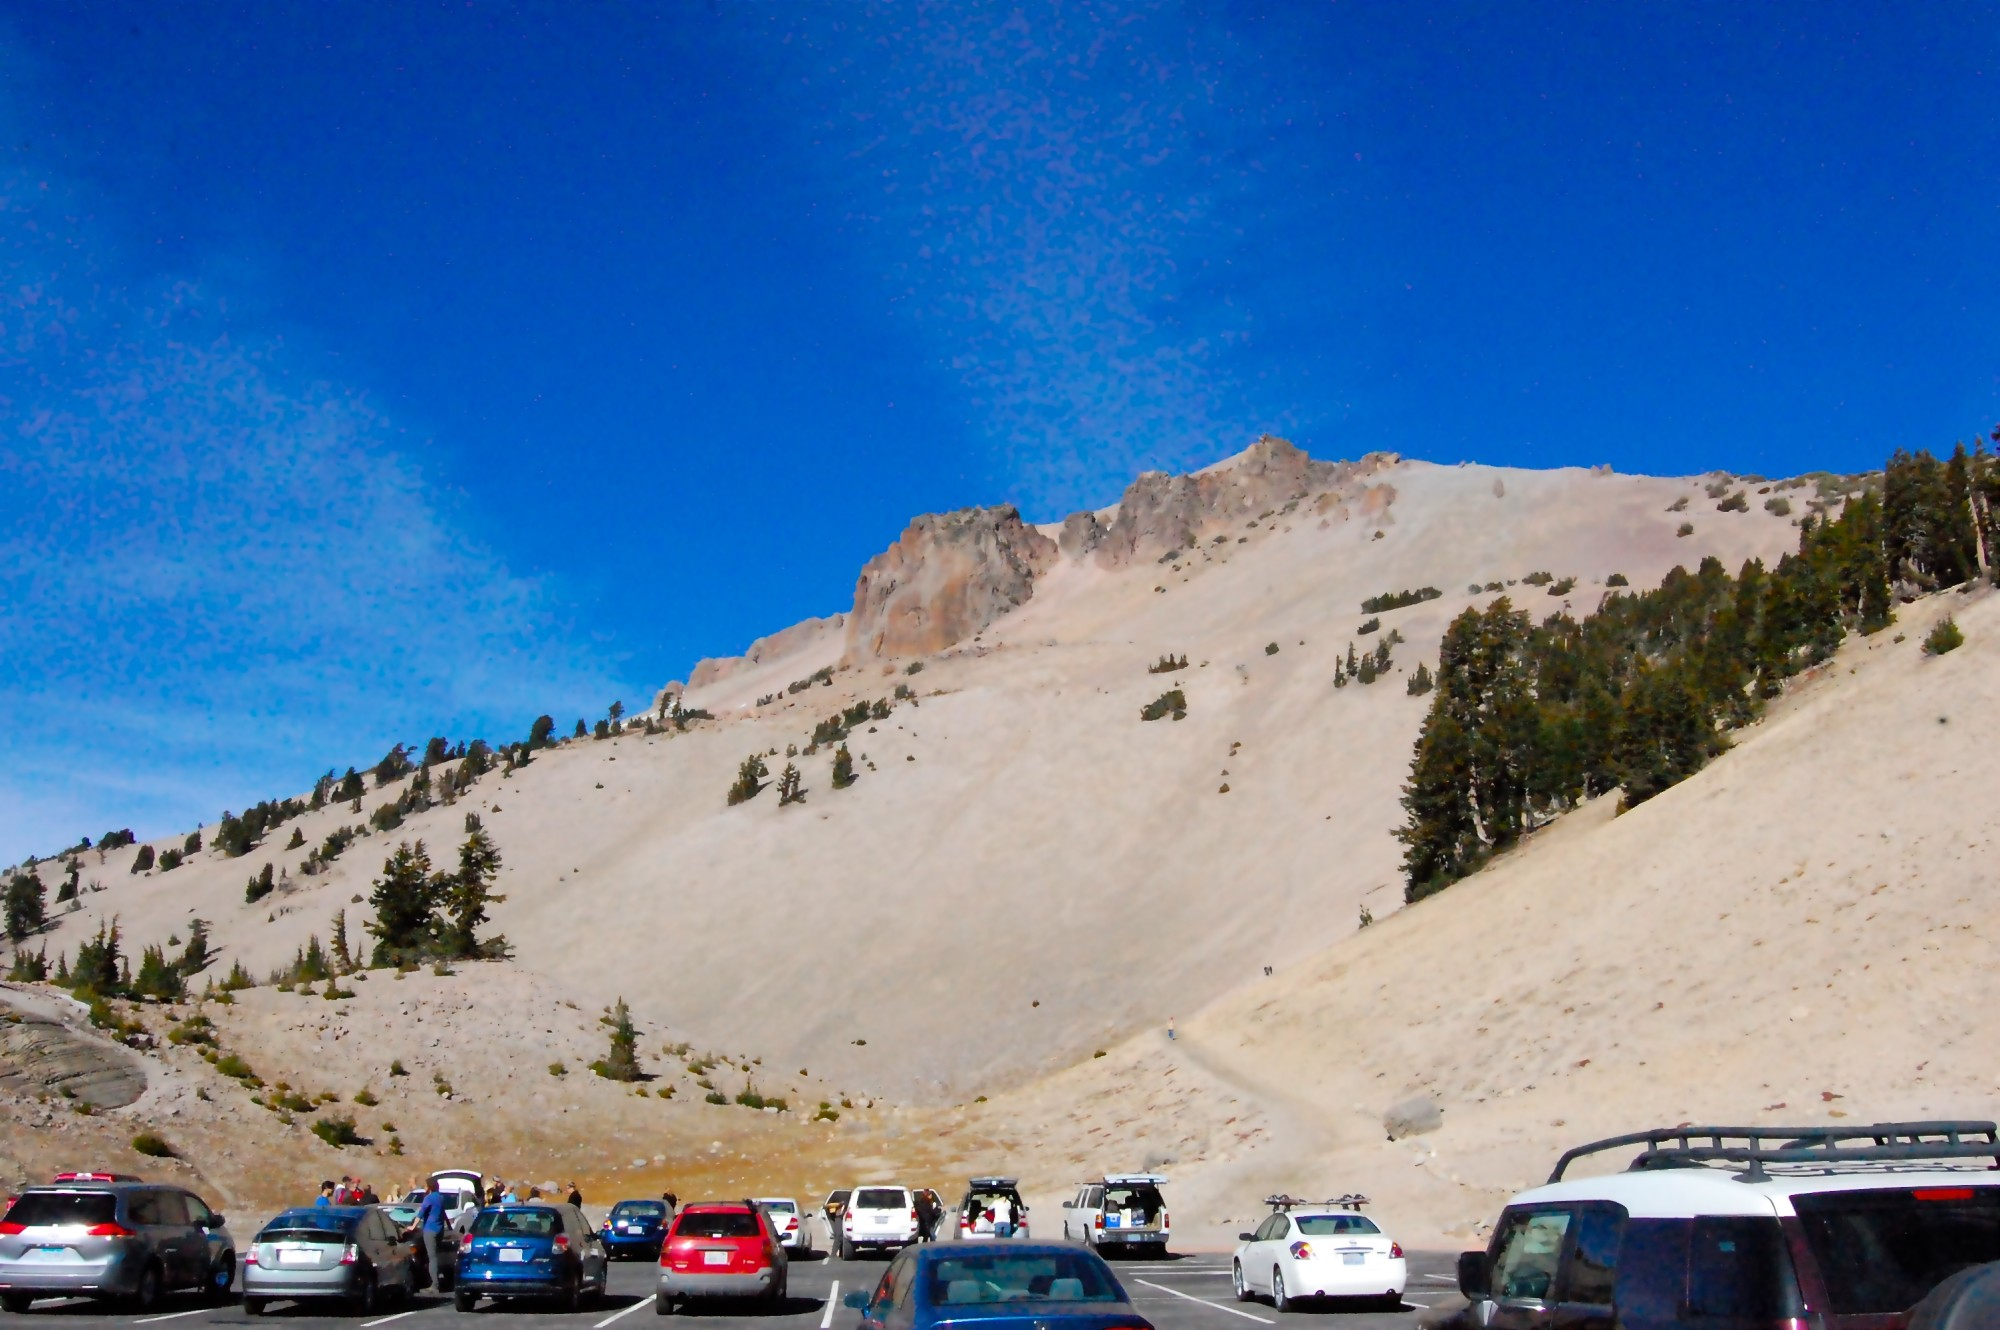 A hike at Lassen Volcanic National Park